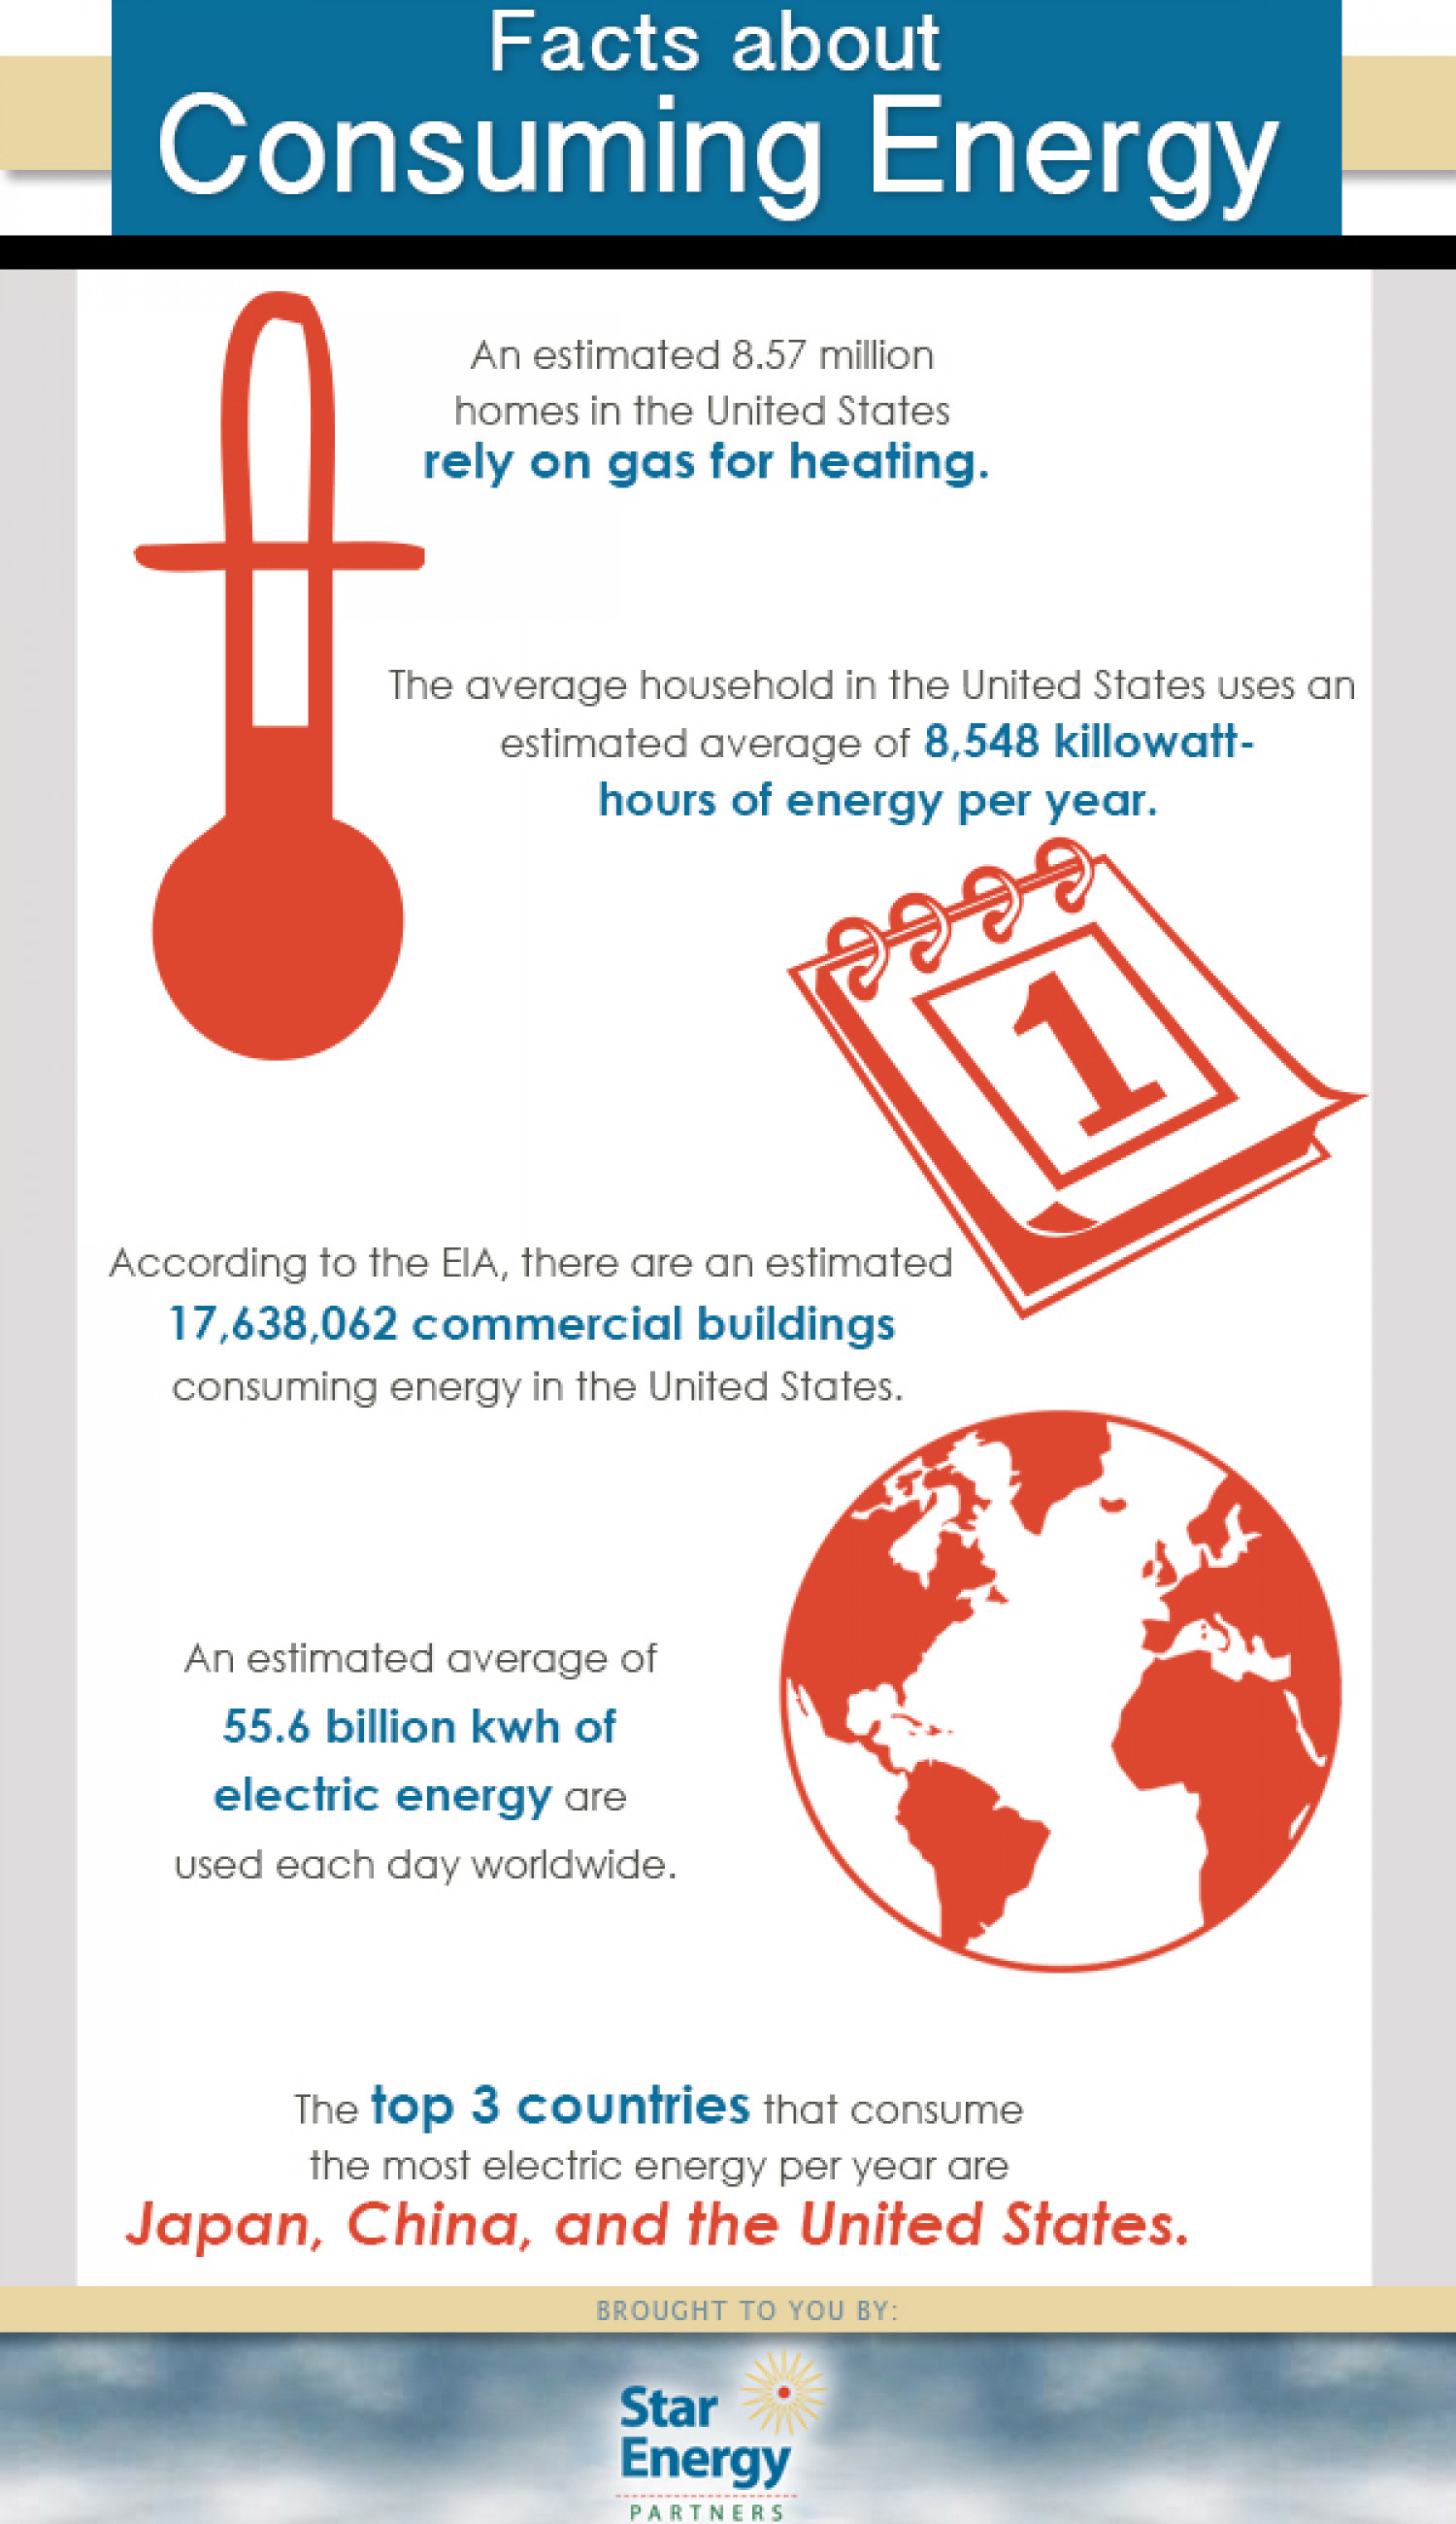 Facts About Consuming Energy Infographic